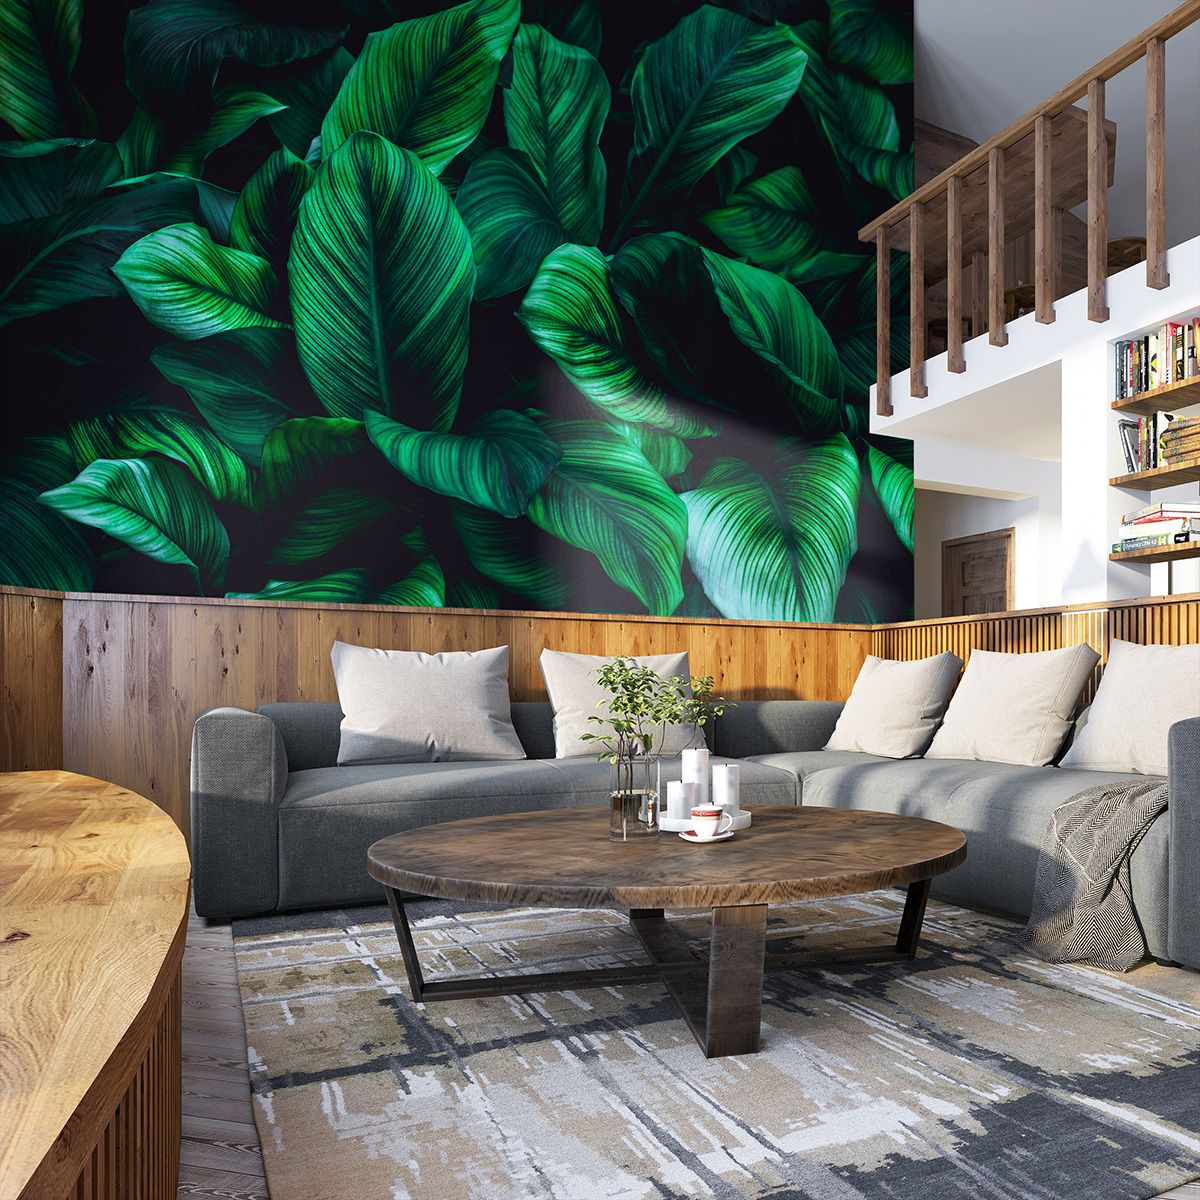 Leaves Of Spathiphyllum Cannifolium Abstract Green Texture Fototapety Redro Outdoor Sectional Sofa Green Texture Outdoor Sectional